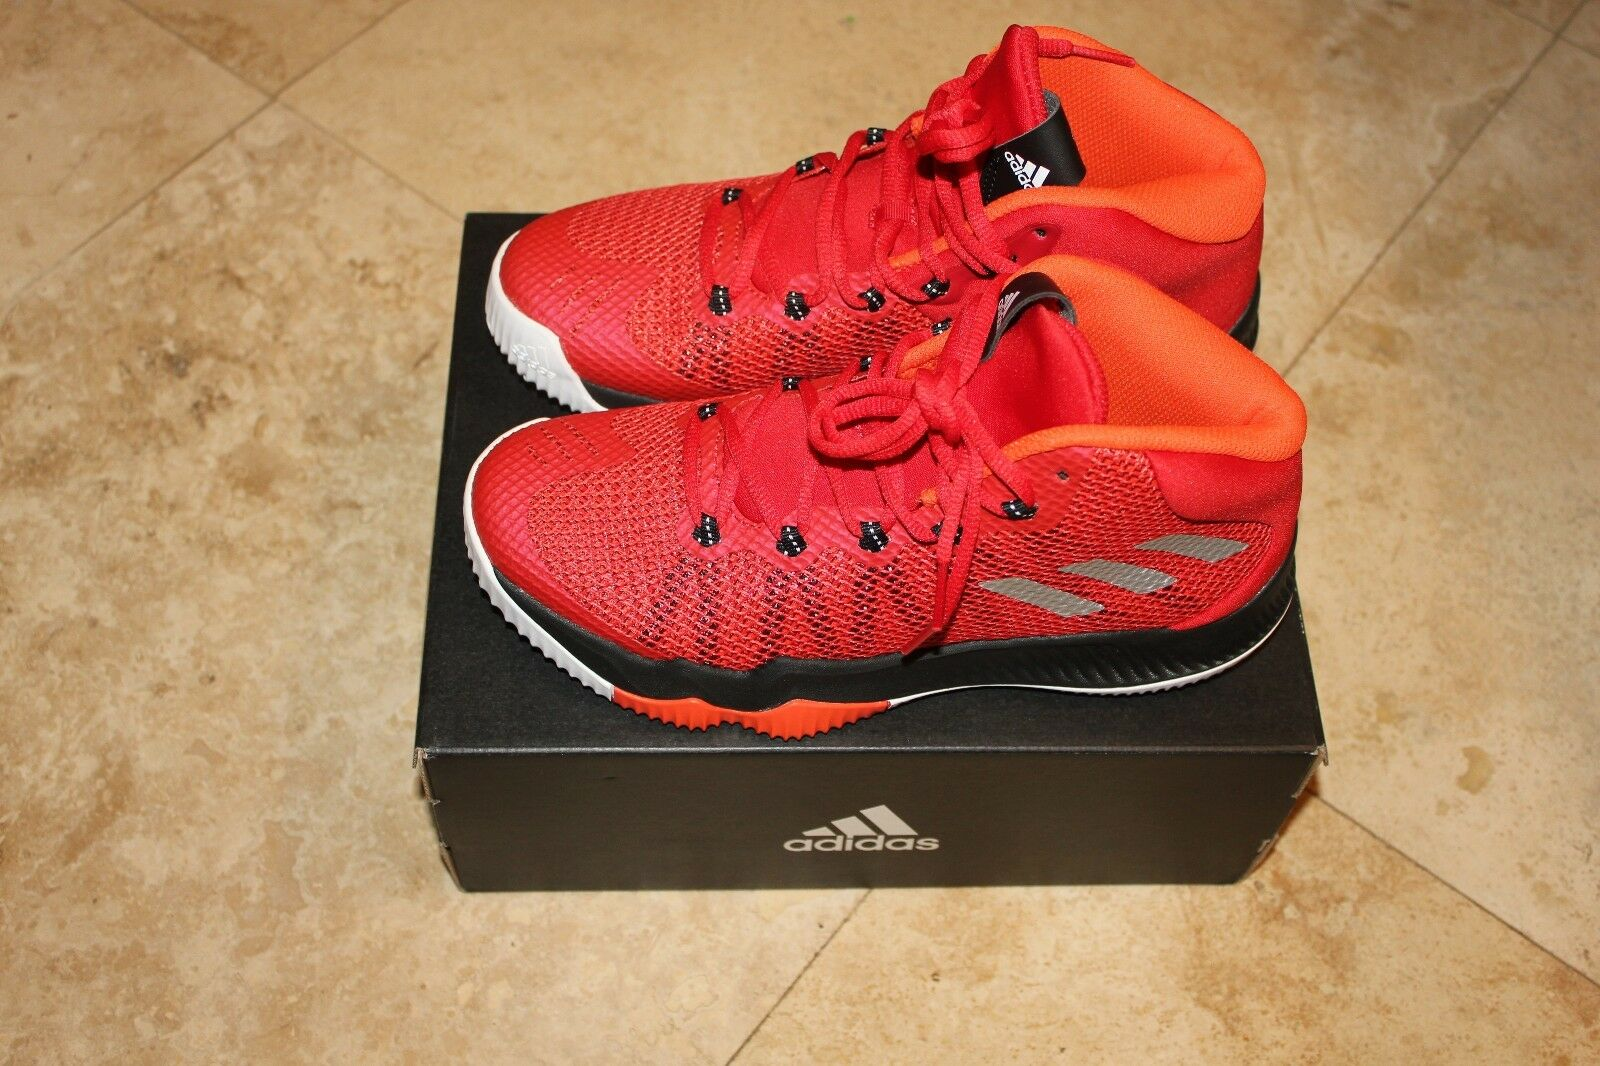 Men's Adidas Crazy Hustle J Red/Black/white/Orange  - Basketball BW0510 Brand discount